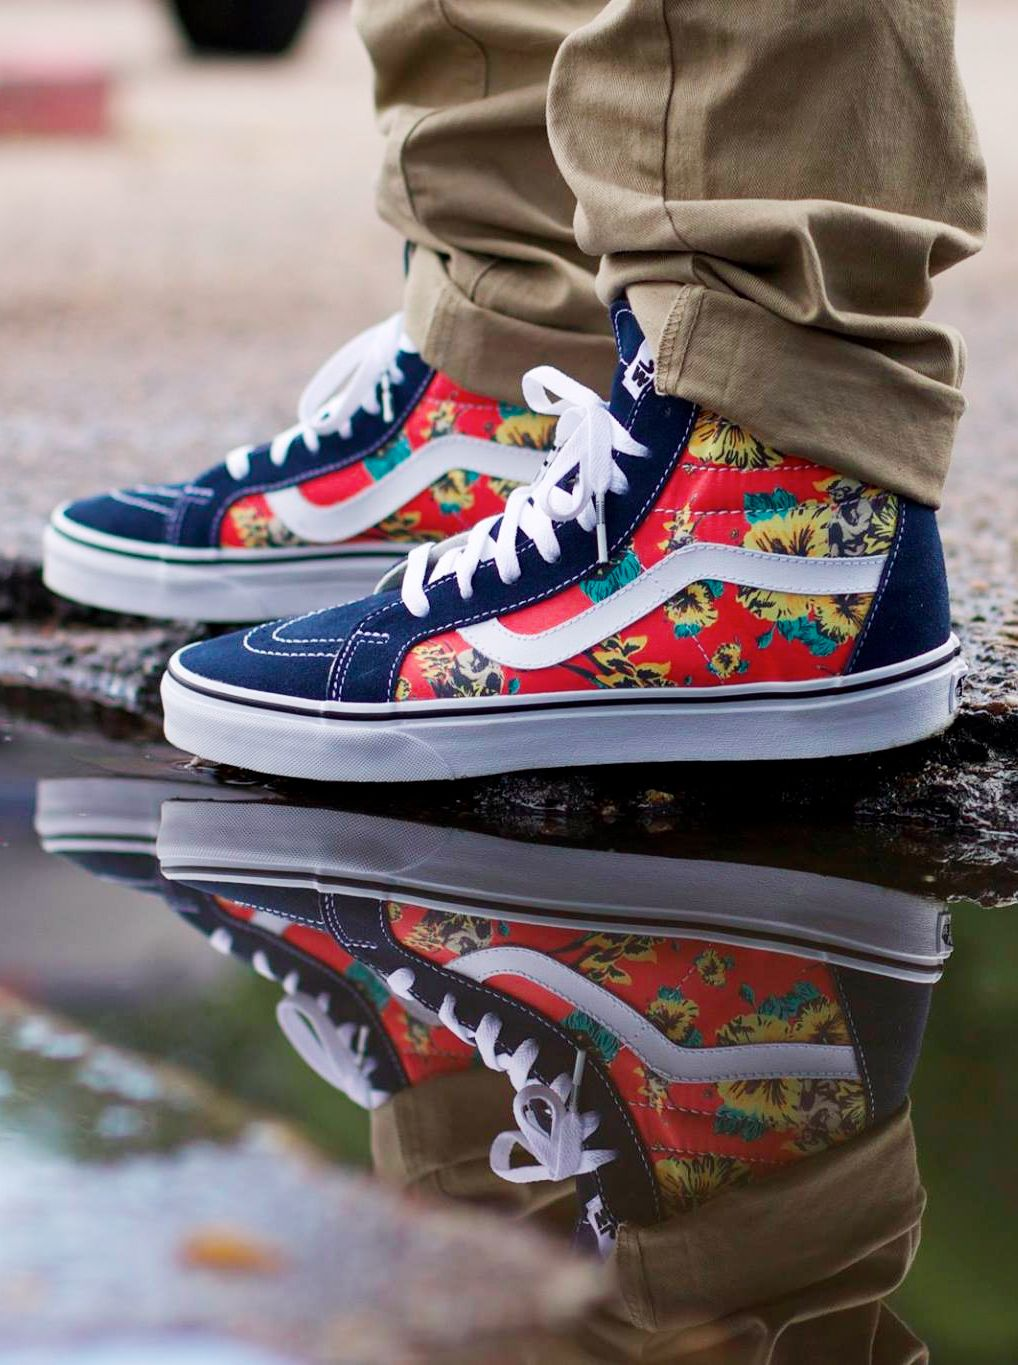 564ae1af6782 Star Wars x Vans Sk8-Hi Reissue  Yoda Aloha   karmaloop has some of the  collection - Rep code